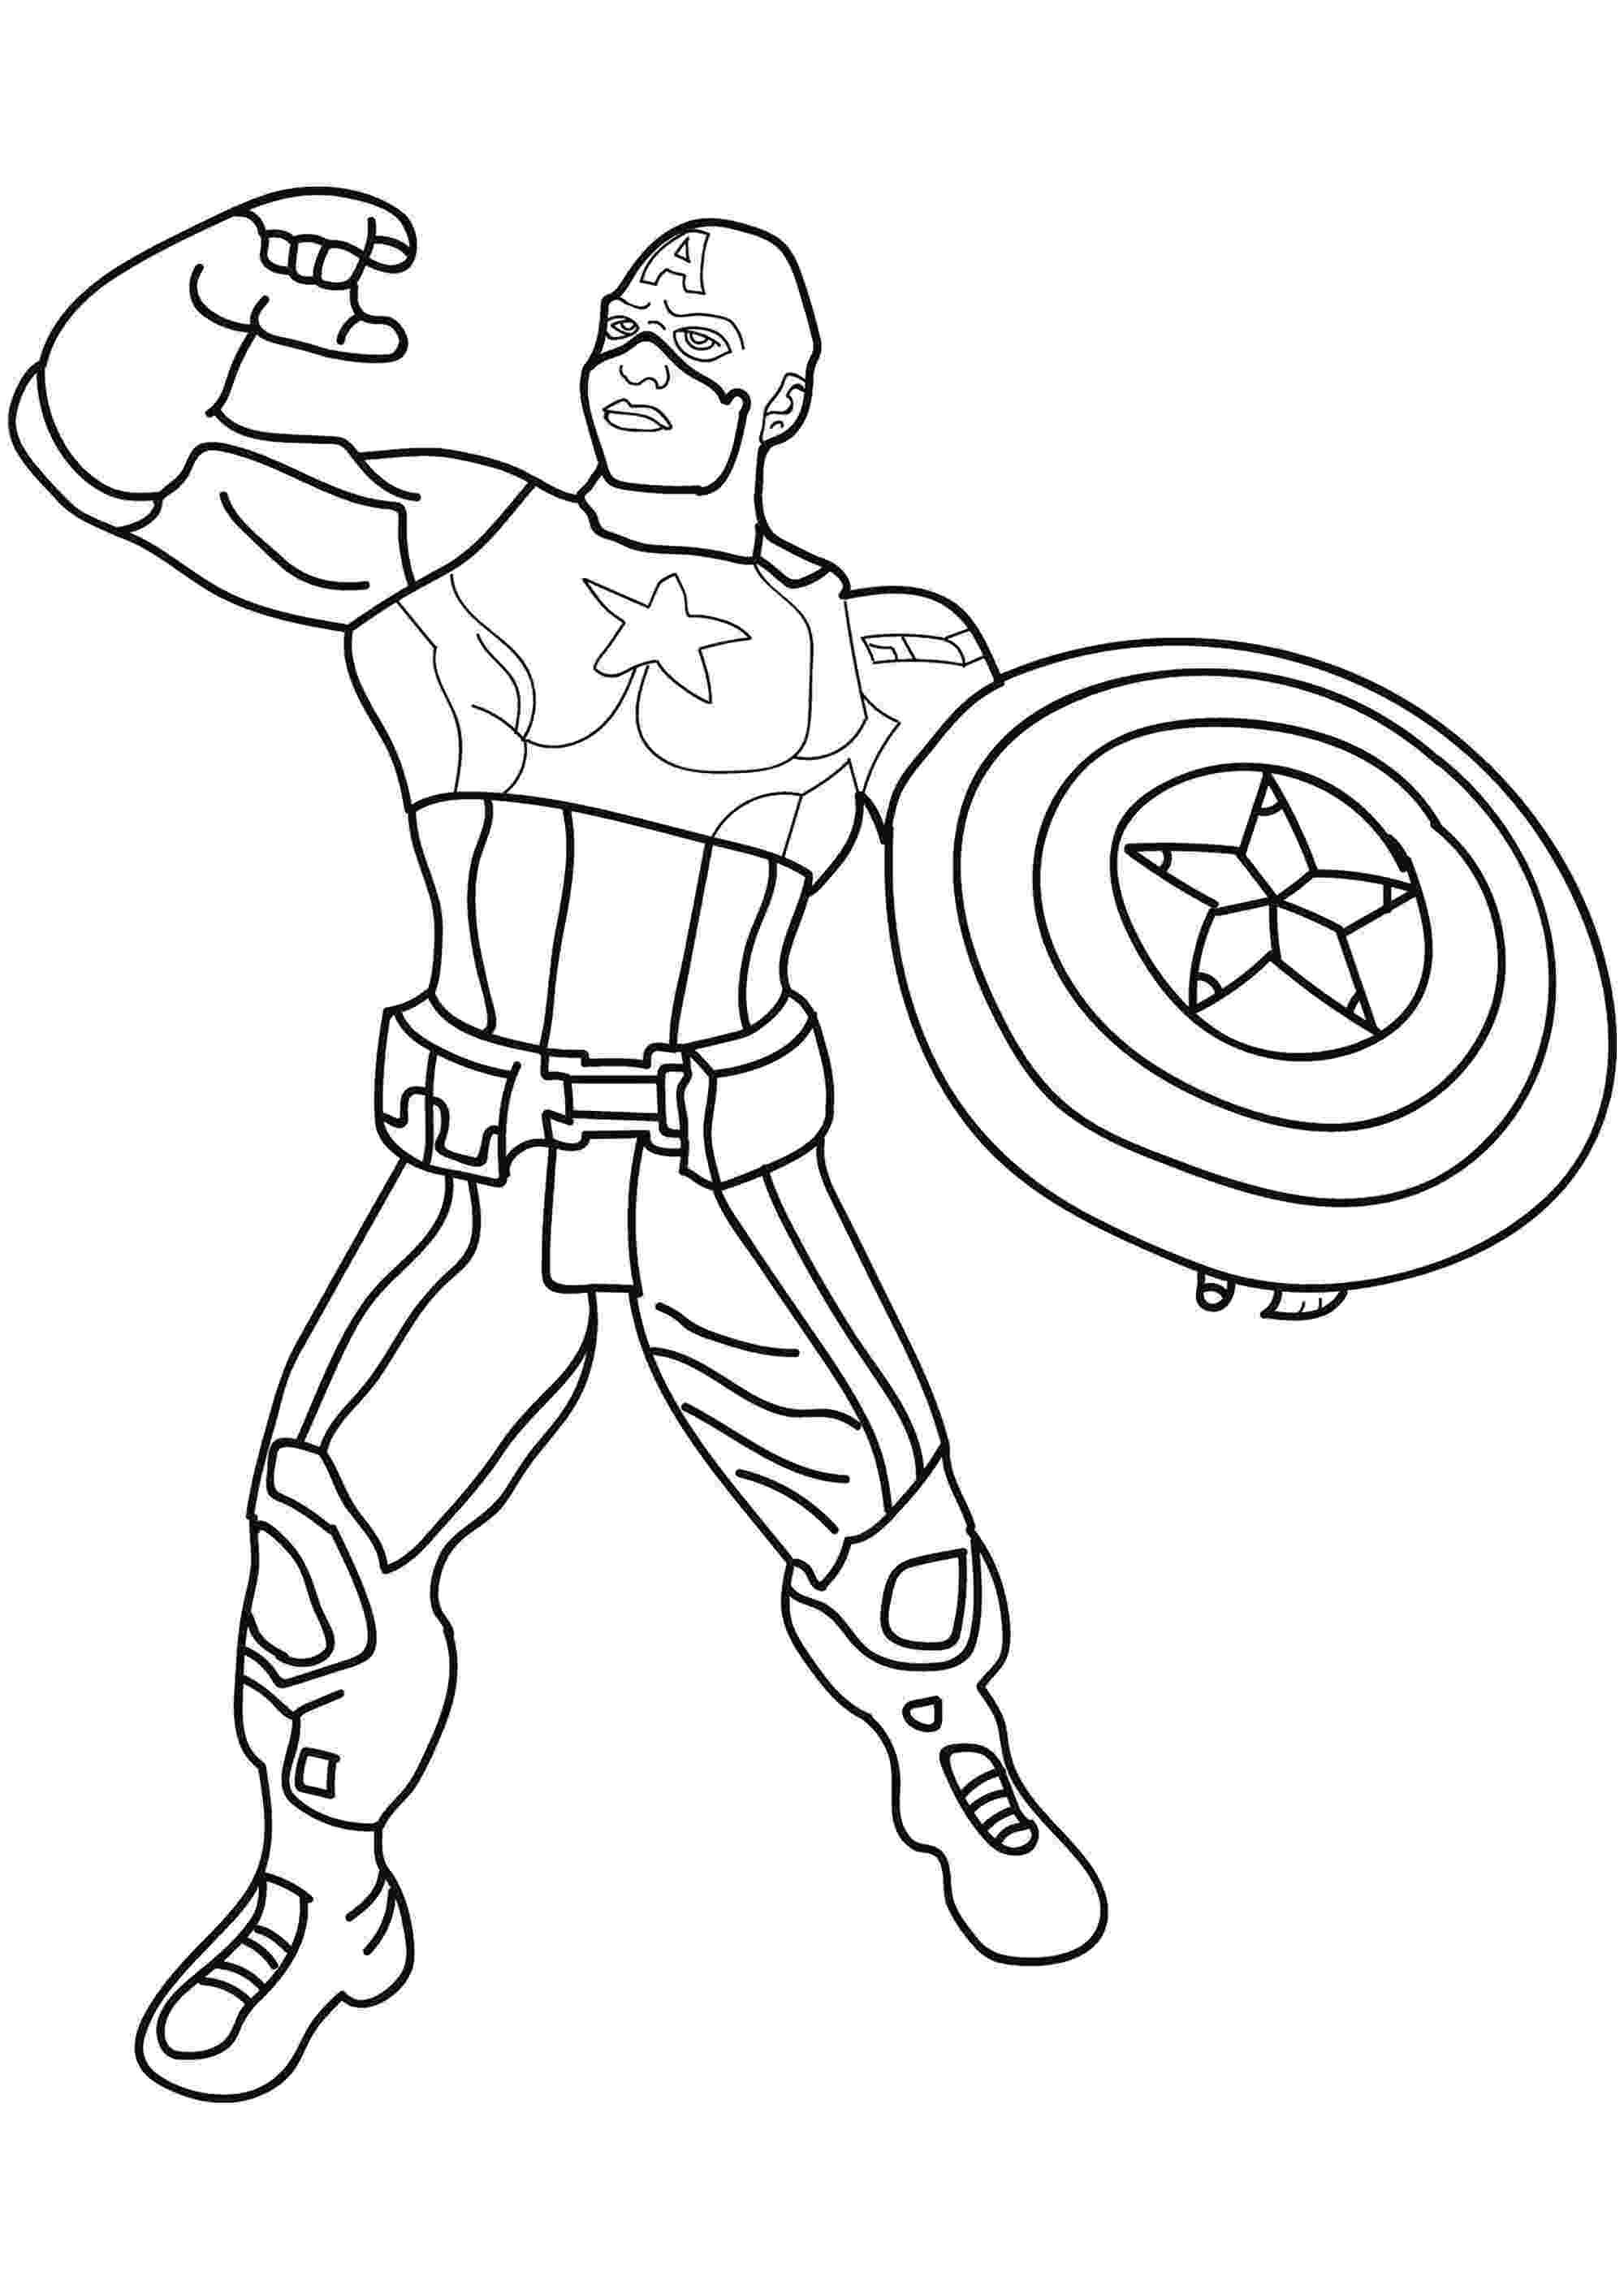 captain america colouring pages captain america coloring pages to download and print for free america captain colouring pages